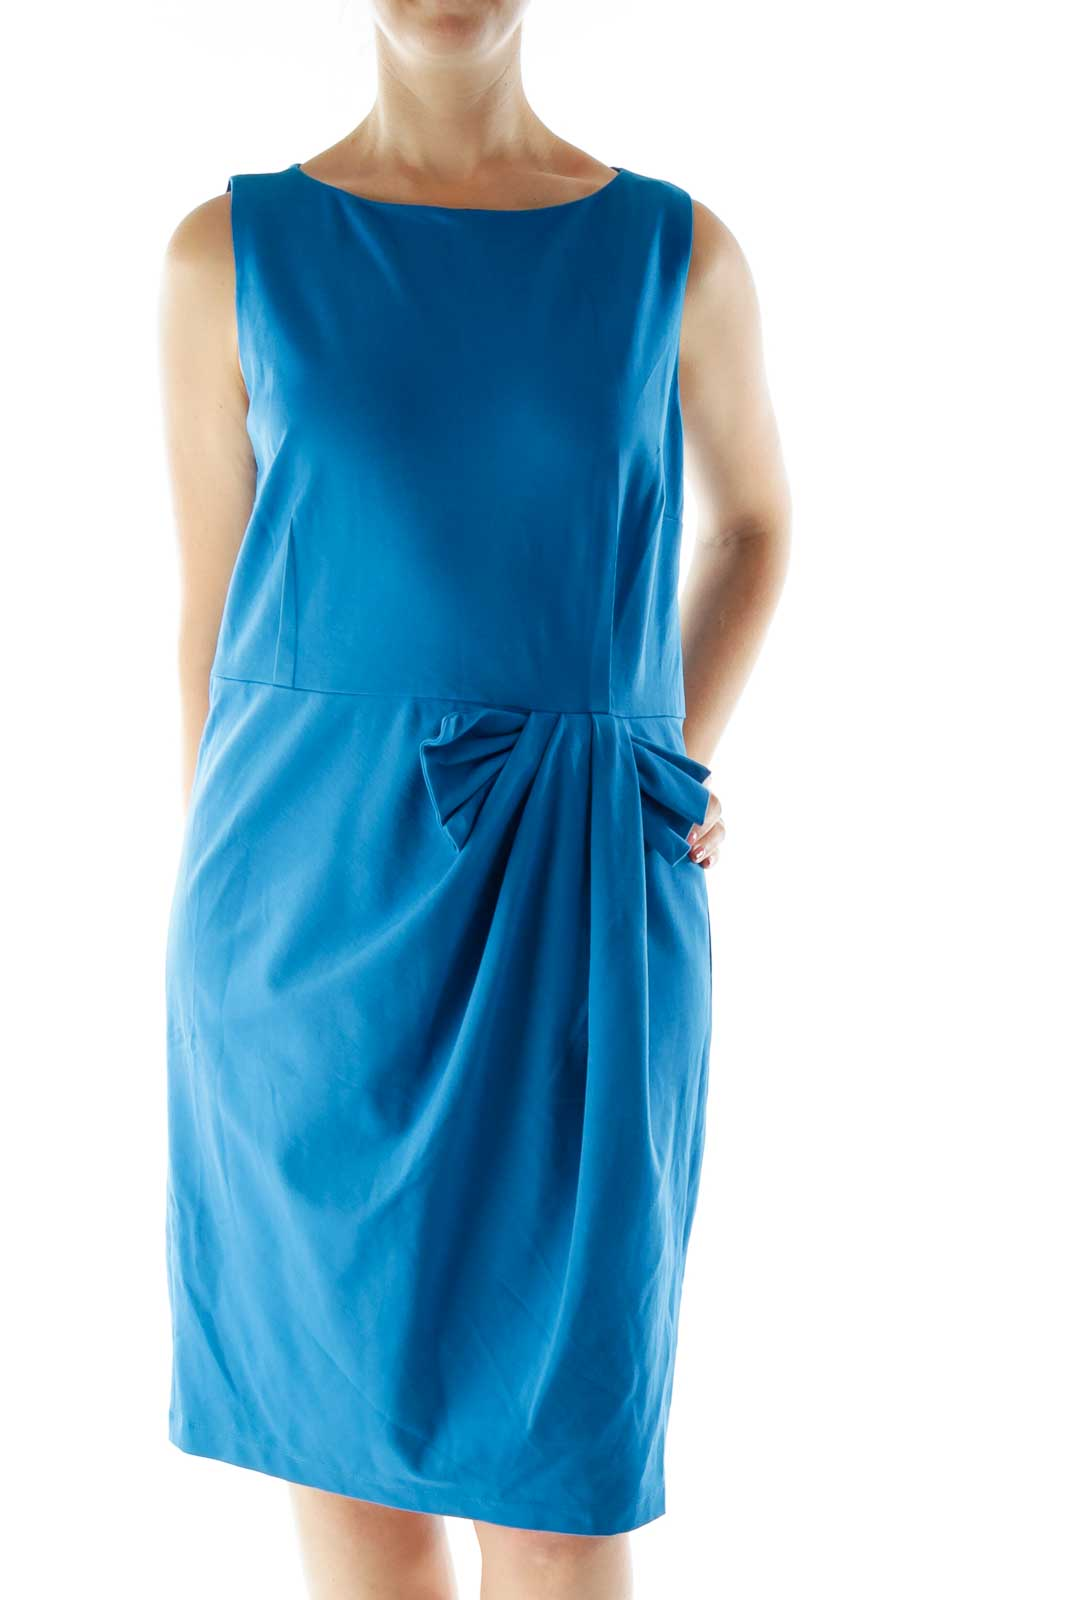 Blue Fitted Work Dress Front